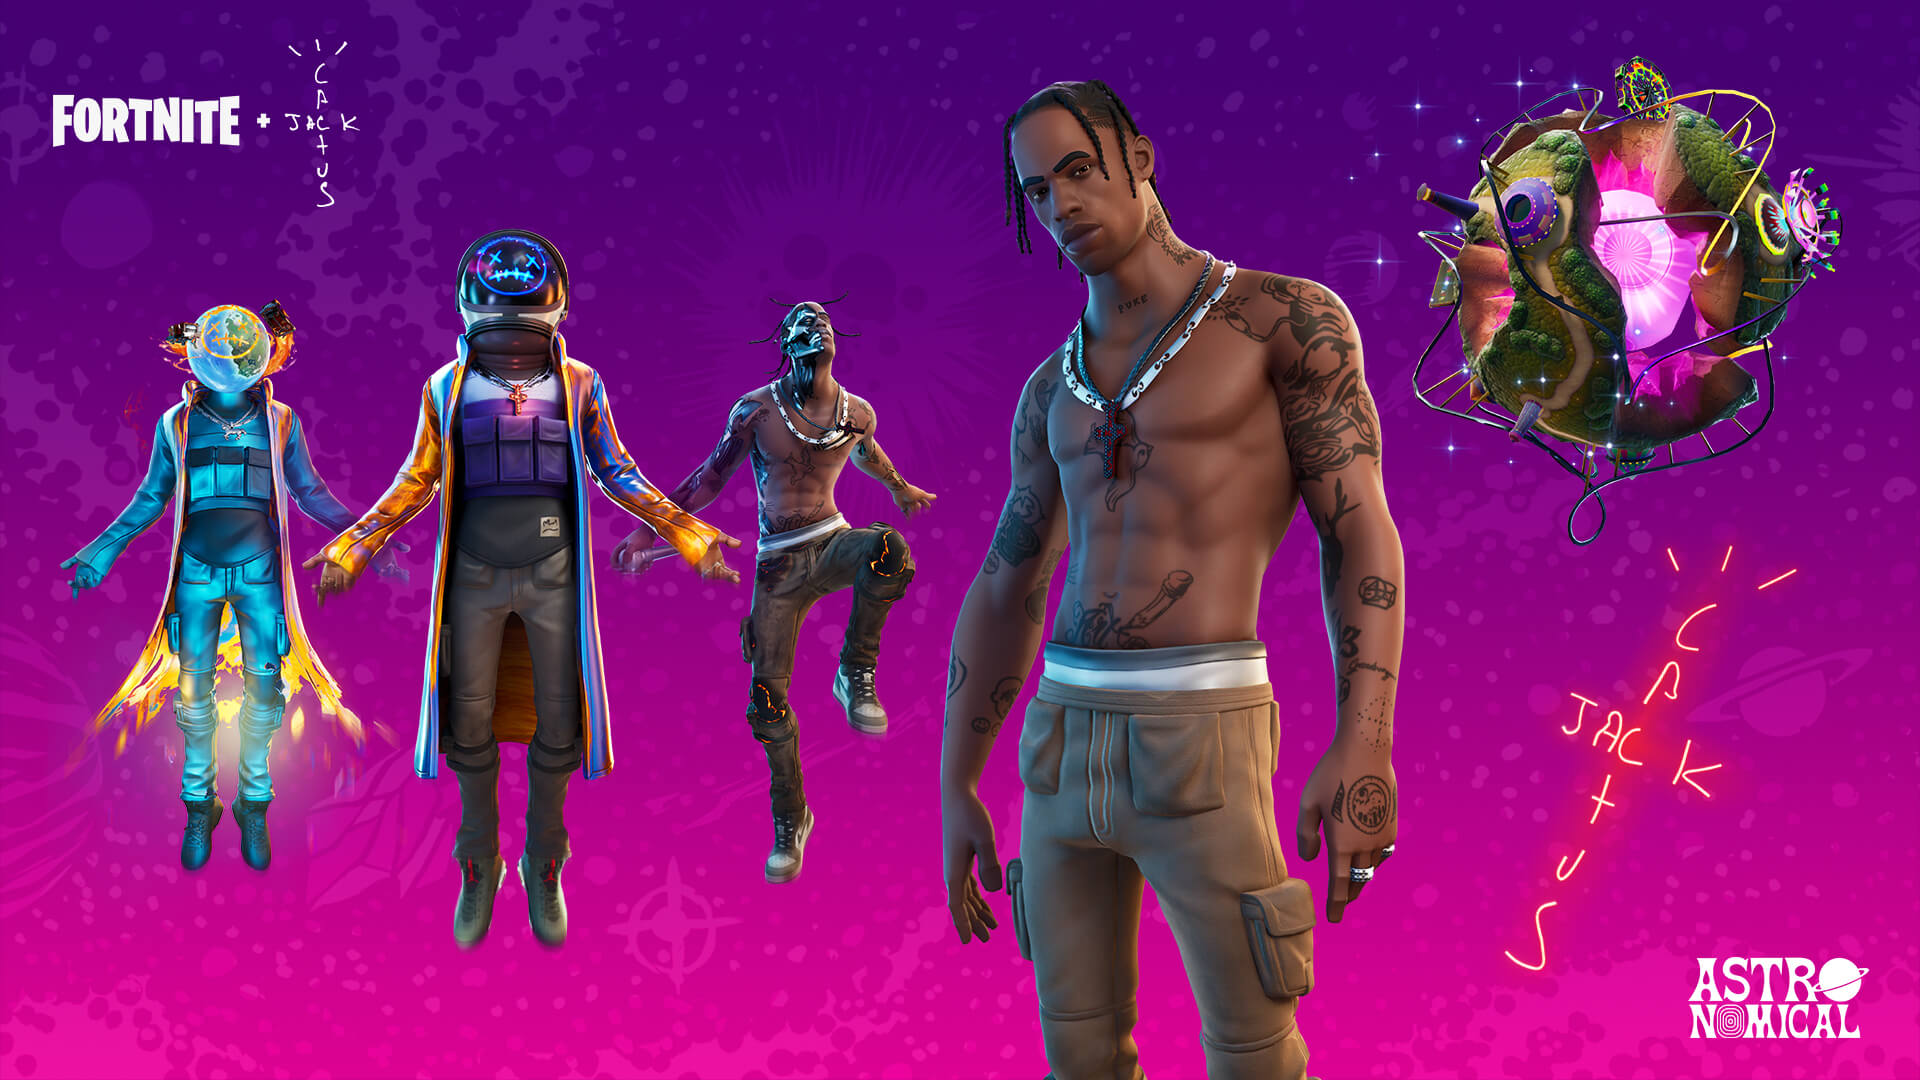 Travis Scott Will Launch Astronomical Into The Fortnite Frontier This Week Space